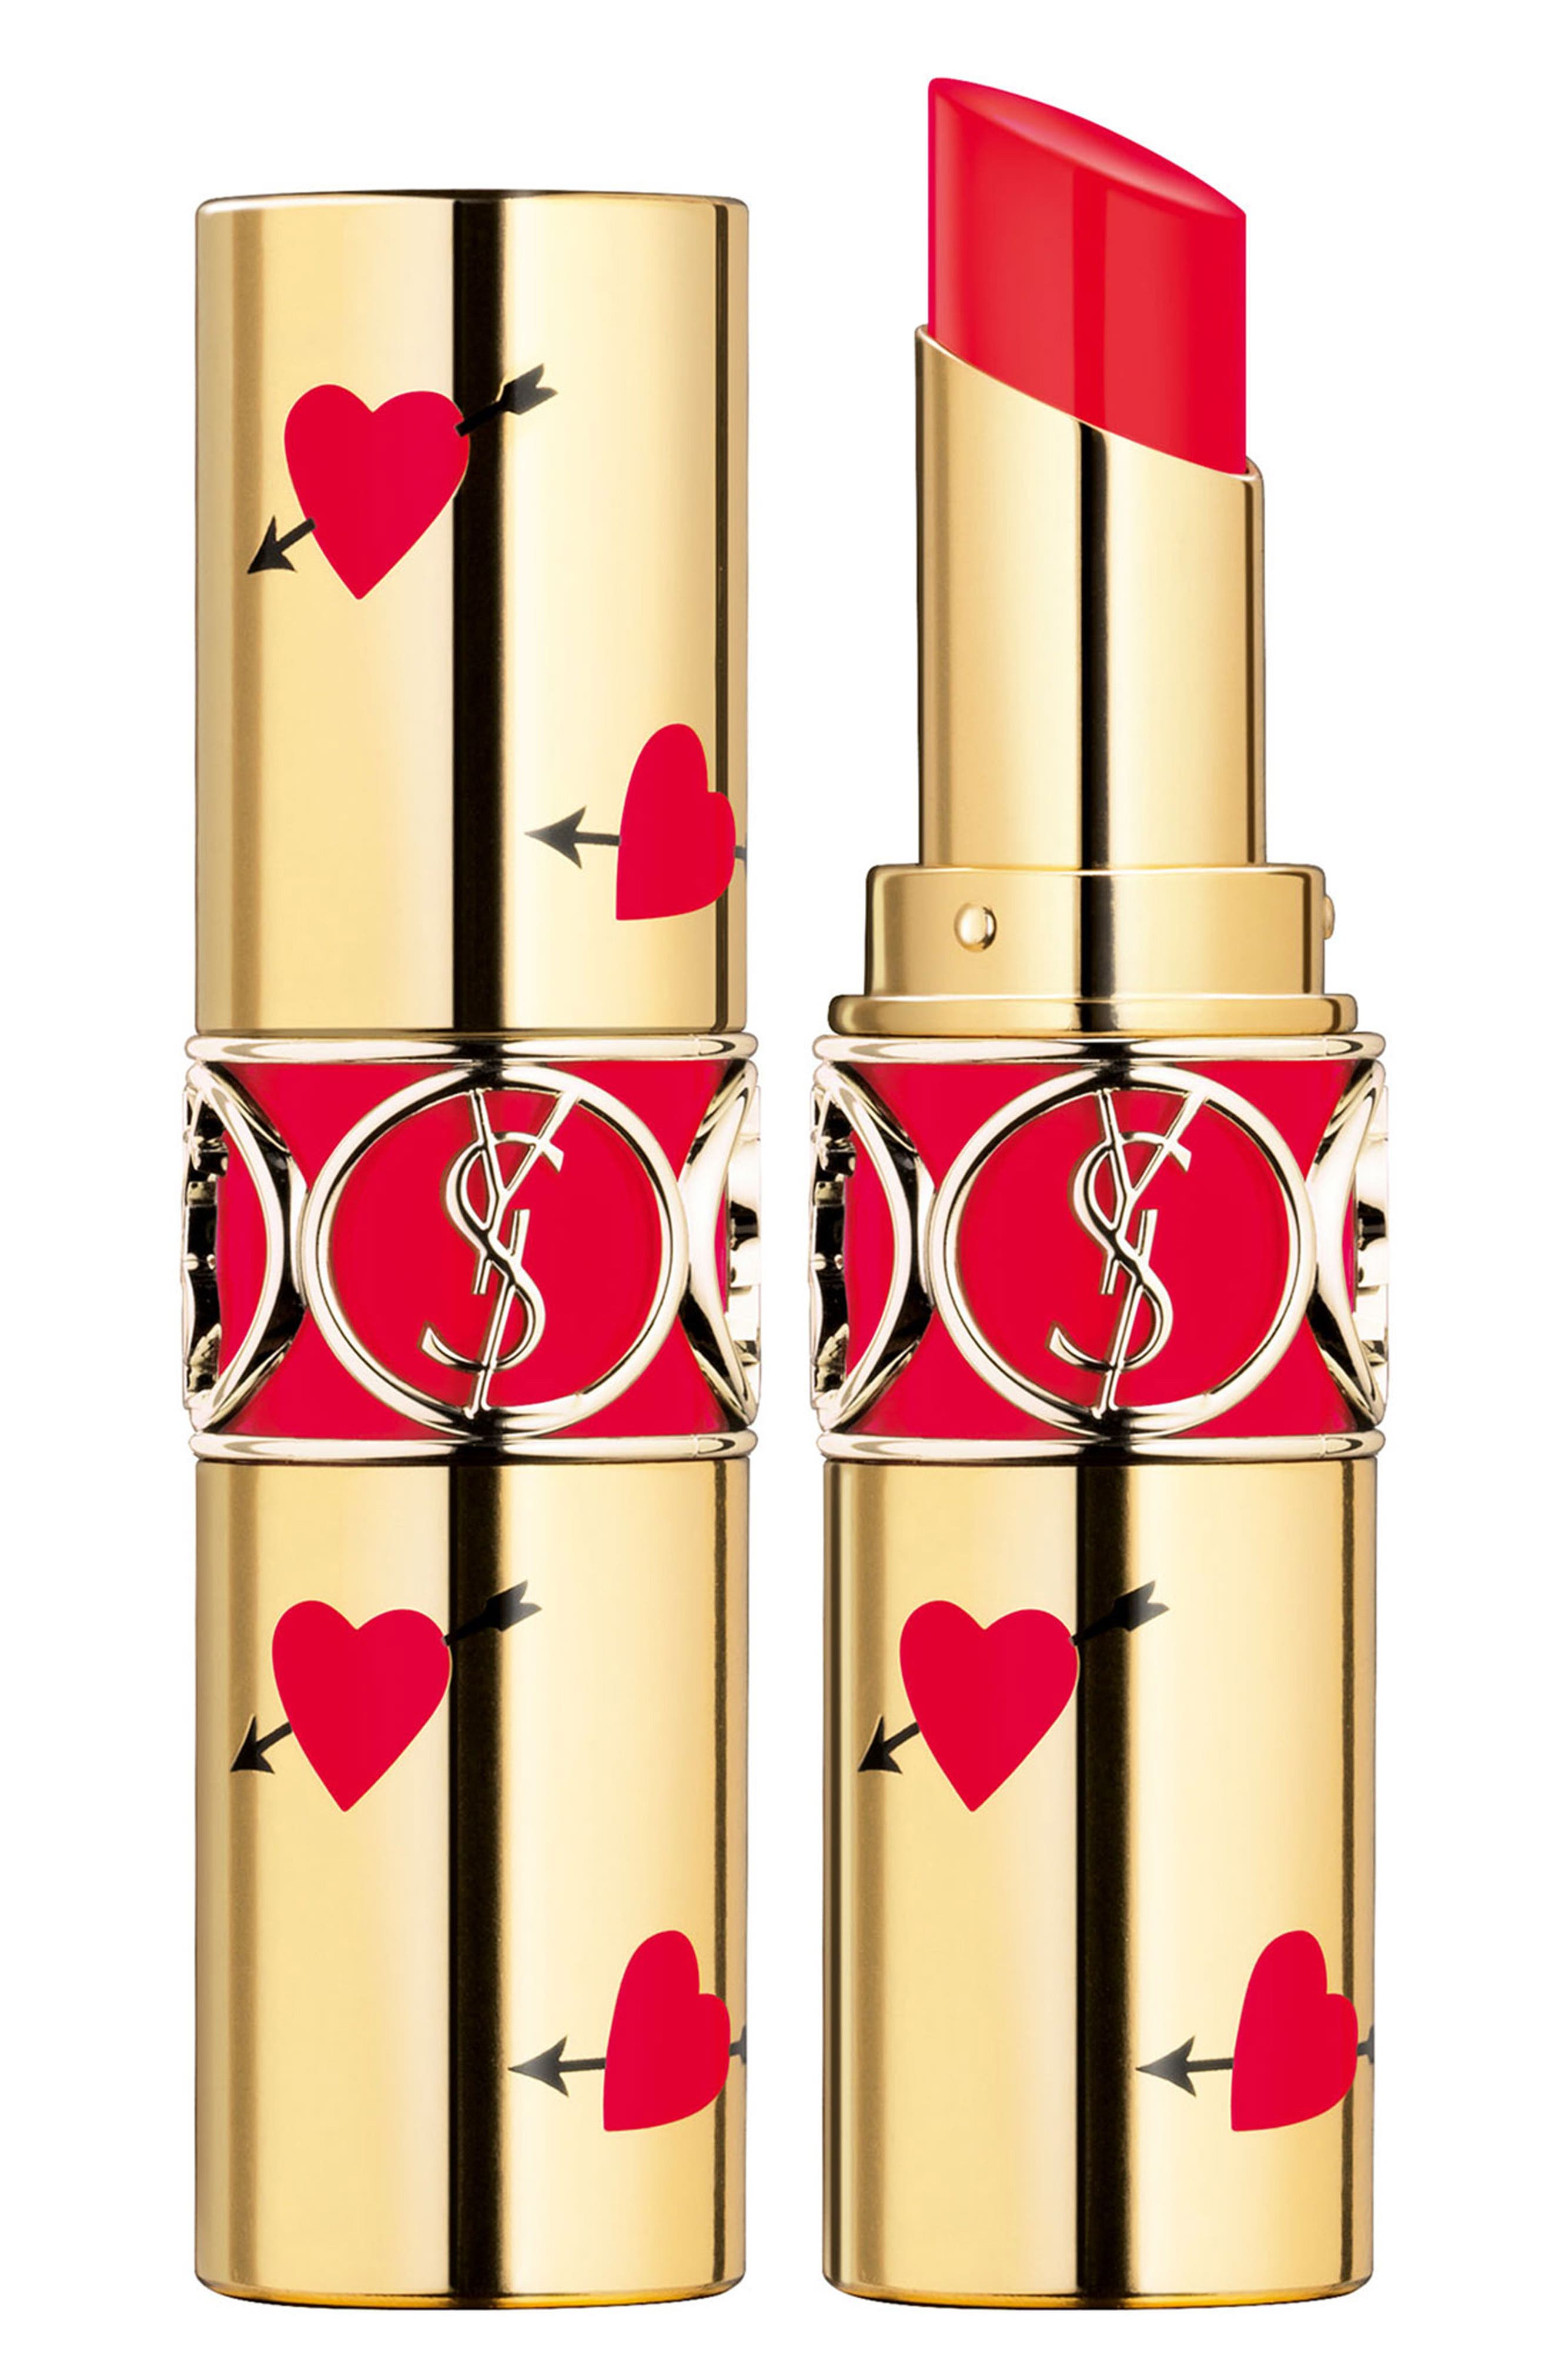 Yves Saint Laurent Heart And Arrow Rouge Volupte Shine Collector Oil-In-Stick Lipstick - 45 Rouge Tuxedo